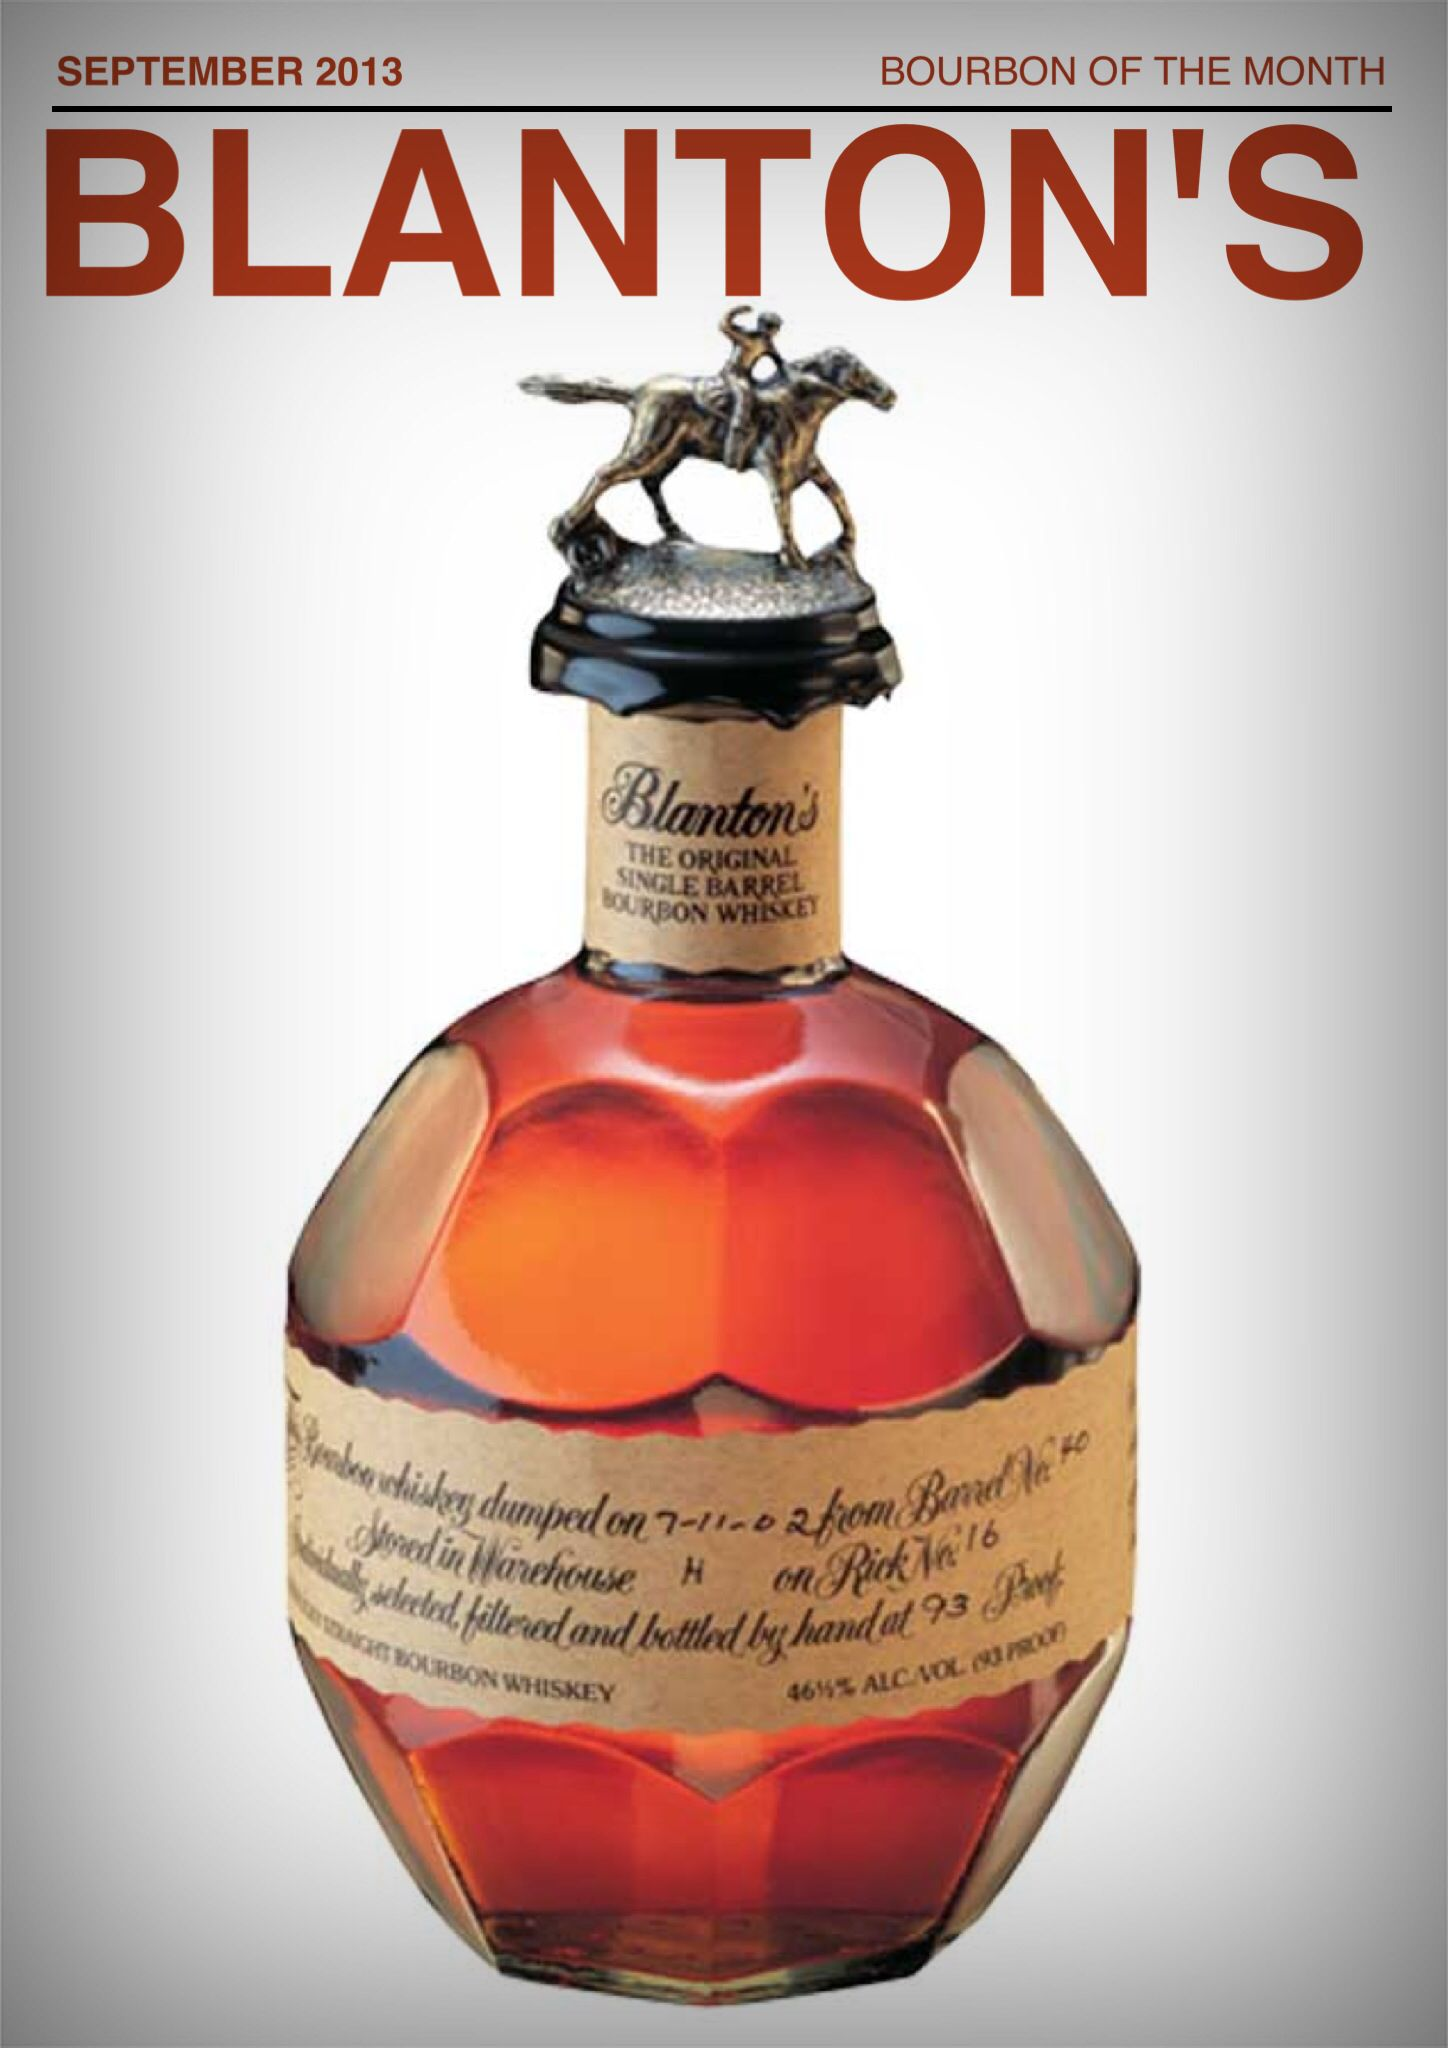 Tastes Really Good Plus It Has A Horse And Jockey Top Love It Bourbon Whiskey Whiskey Cigars And Whiskey